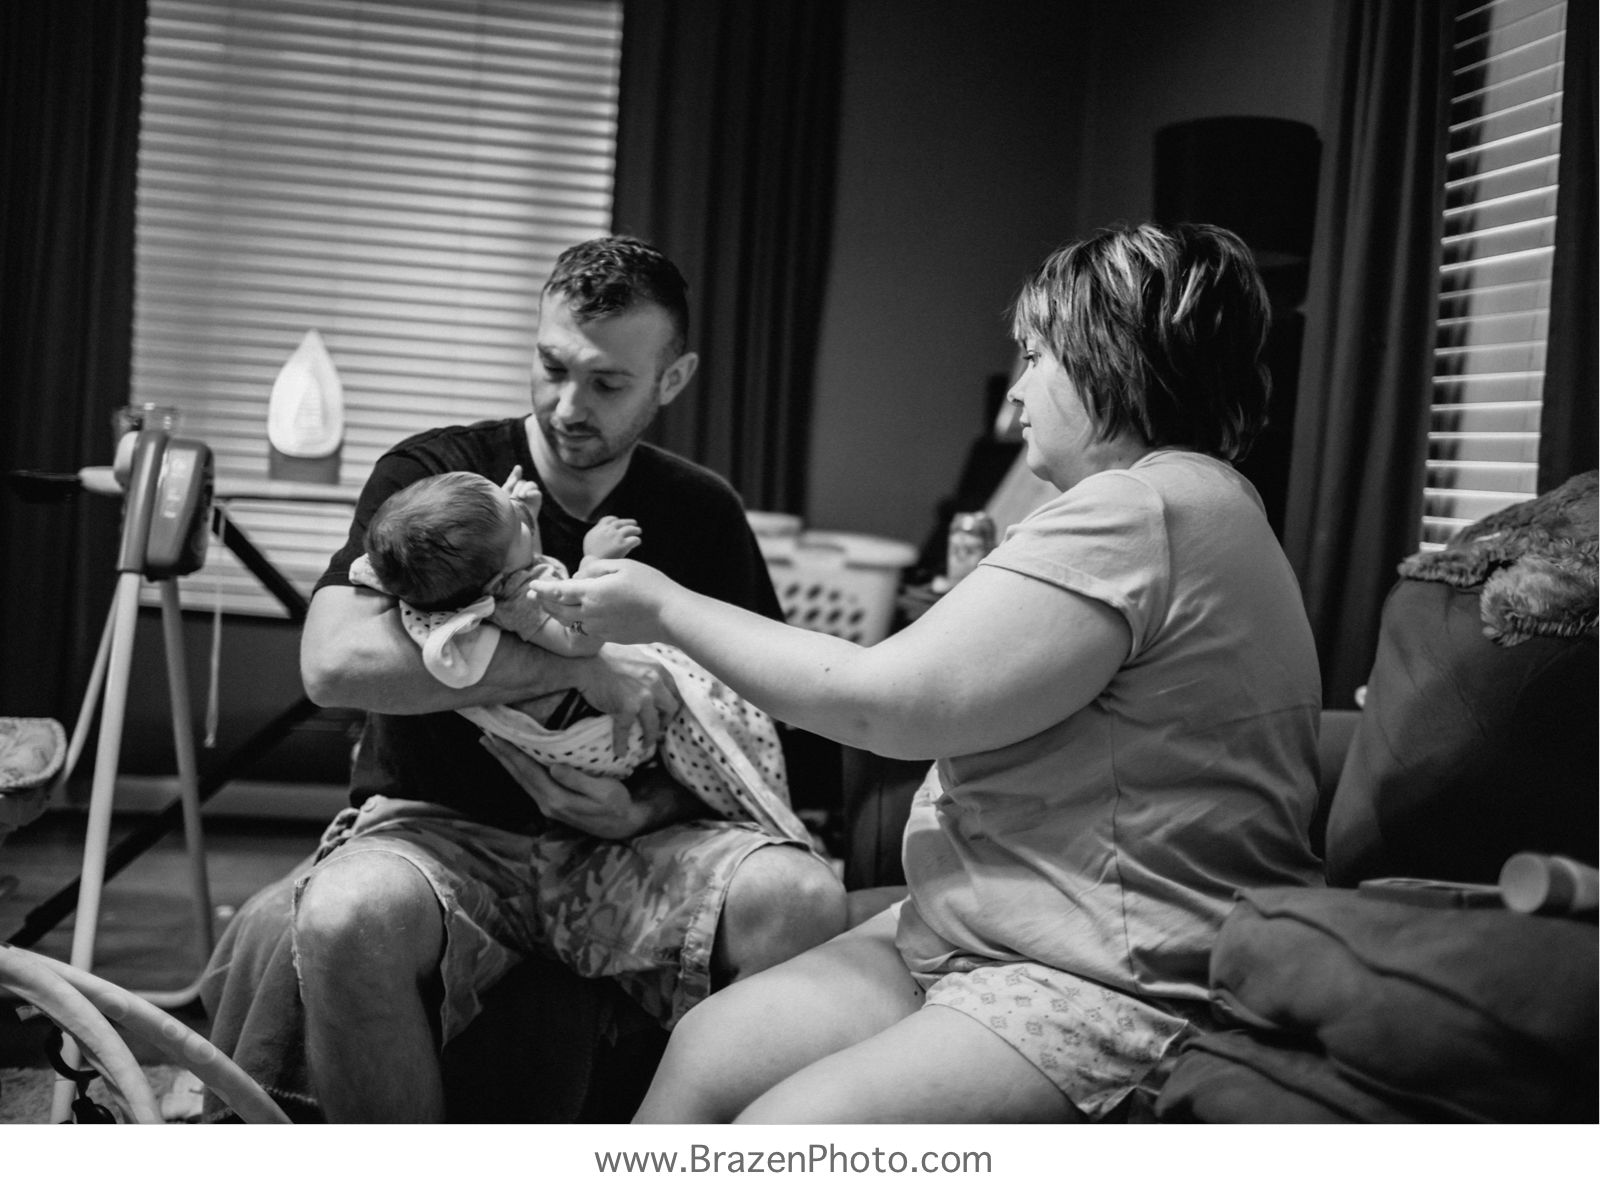 Orlando Family Photography-Brazen Photo-KBJ19.jpg